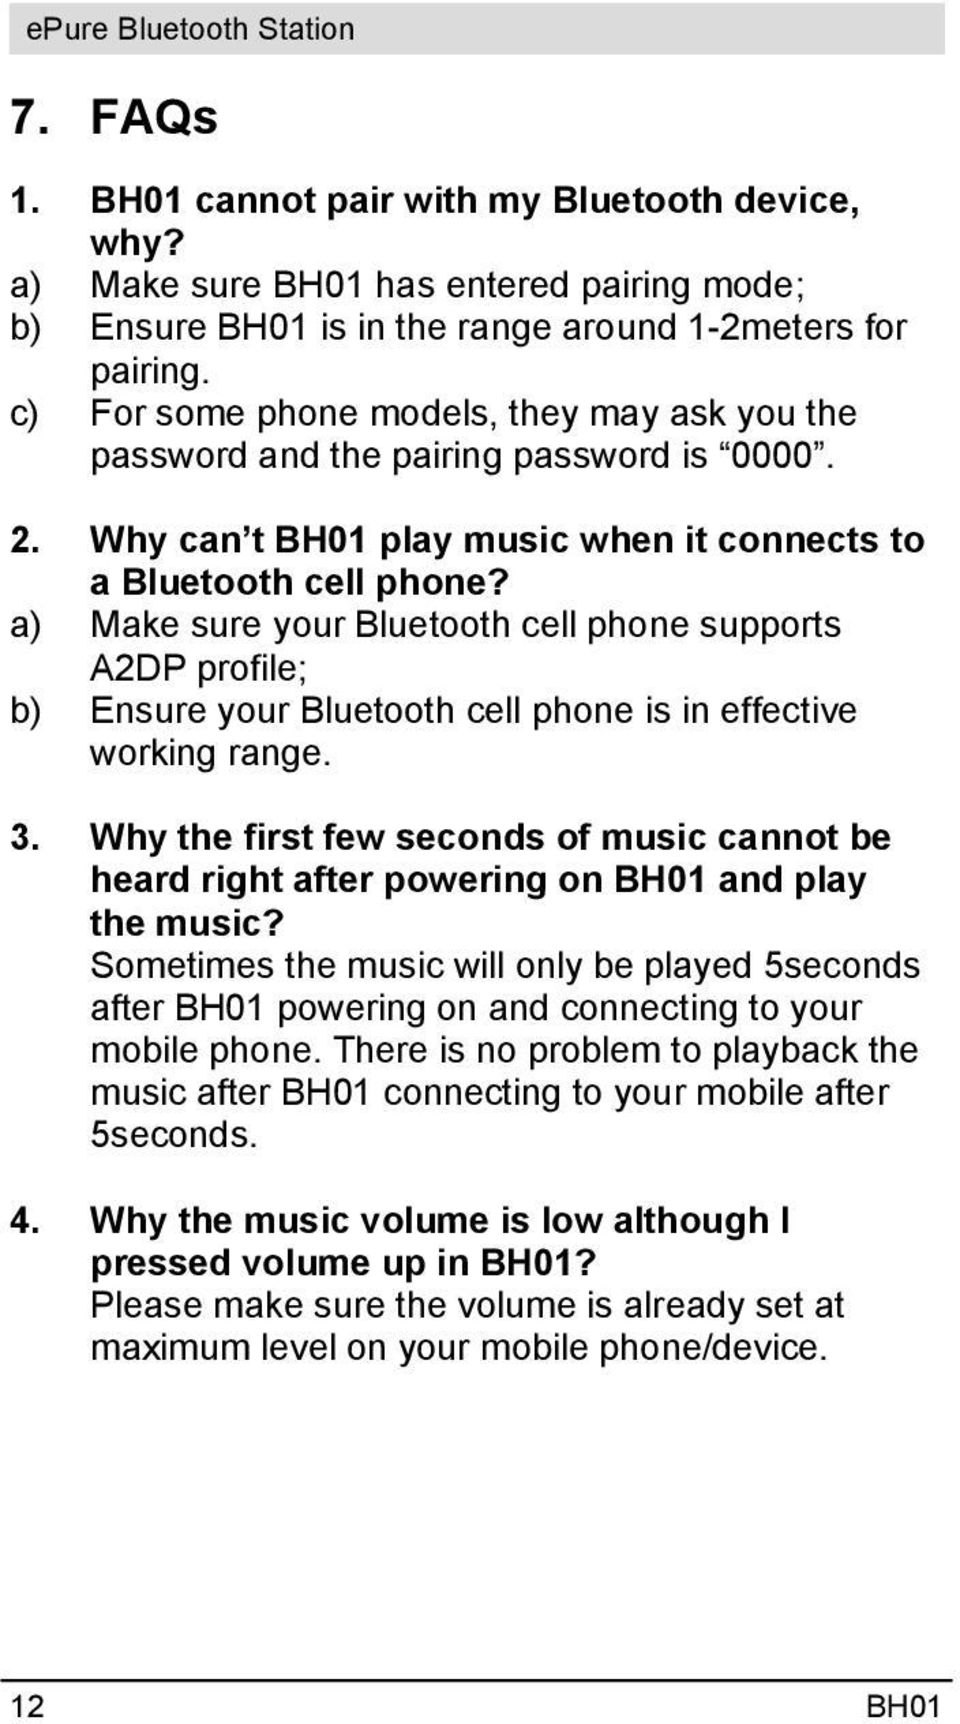 a) Make sure your Bluetooth cell phone supports A2DP profile; b) Ensure your Bluetooth cell phone is in effective working range. 3.